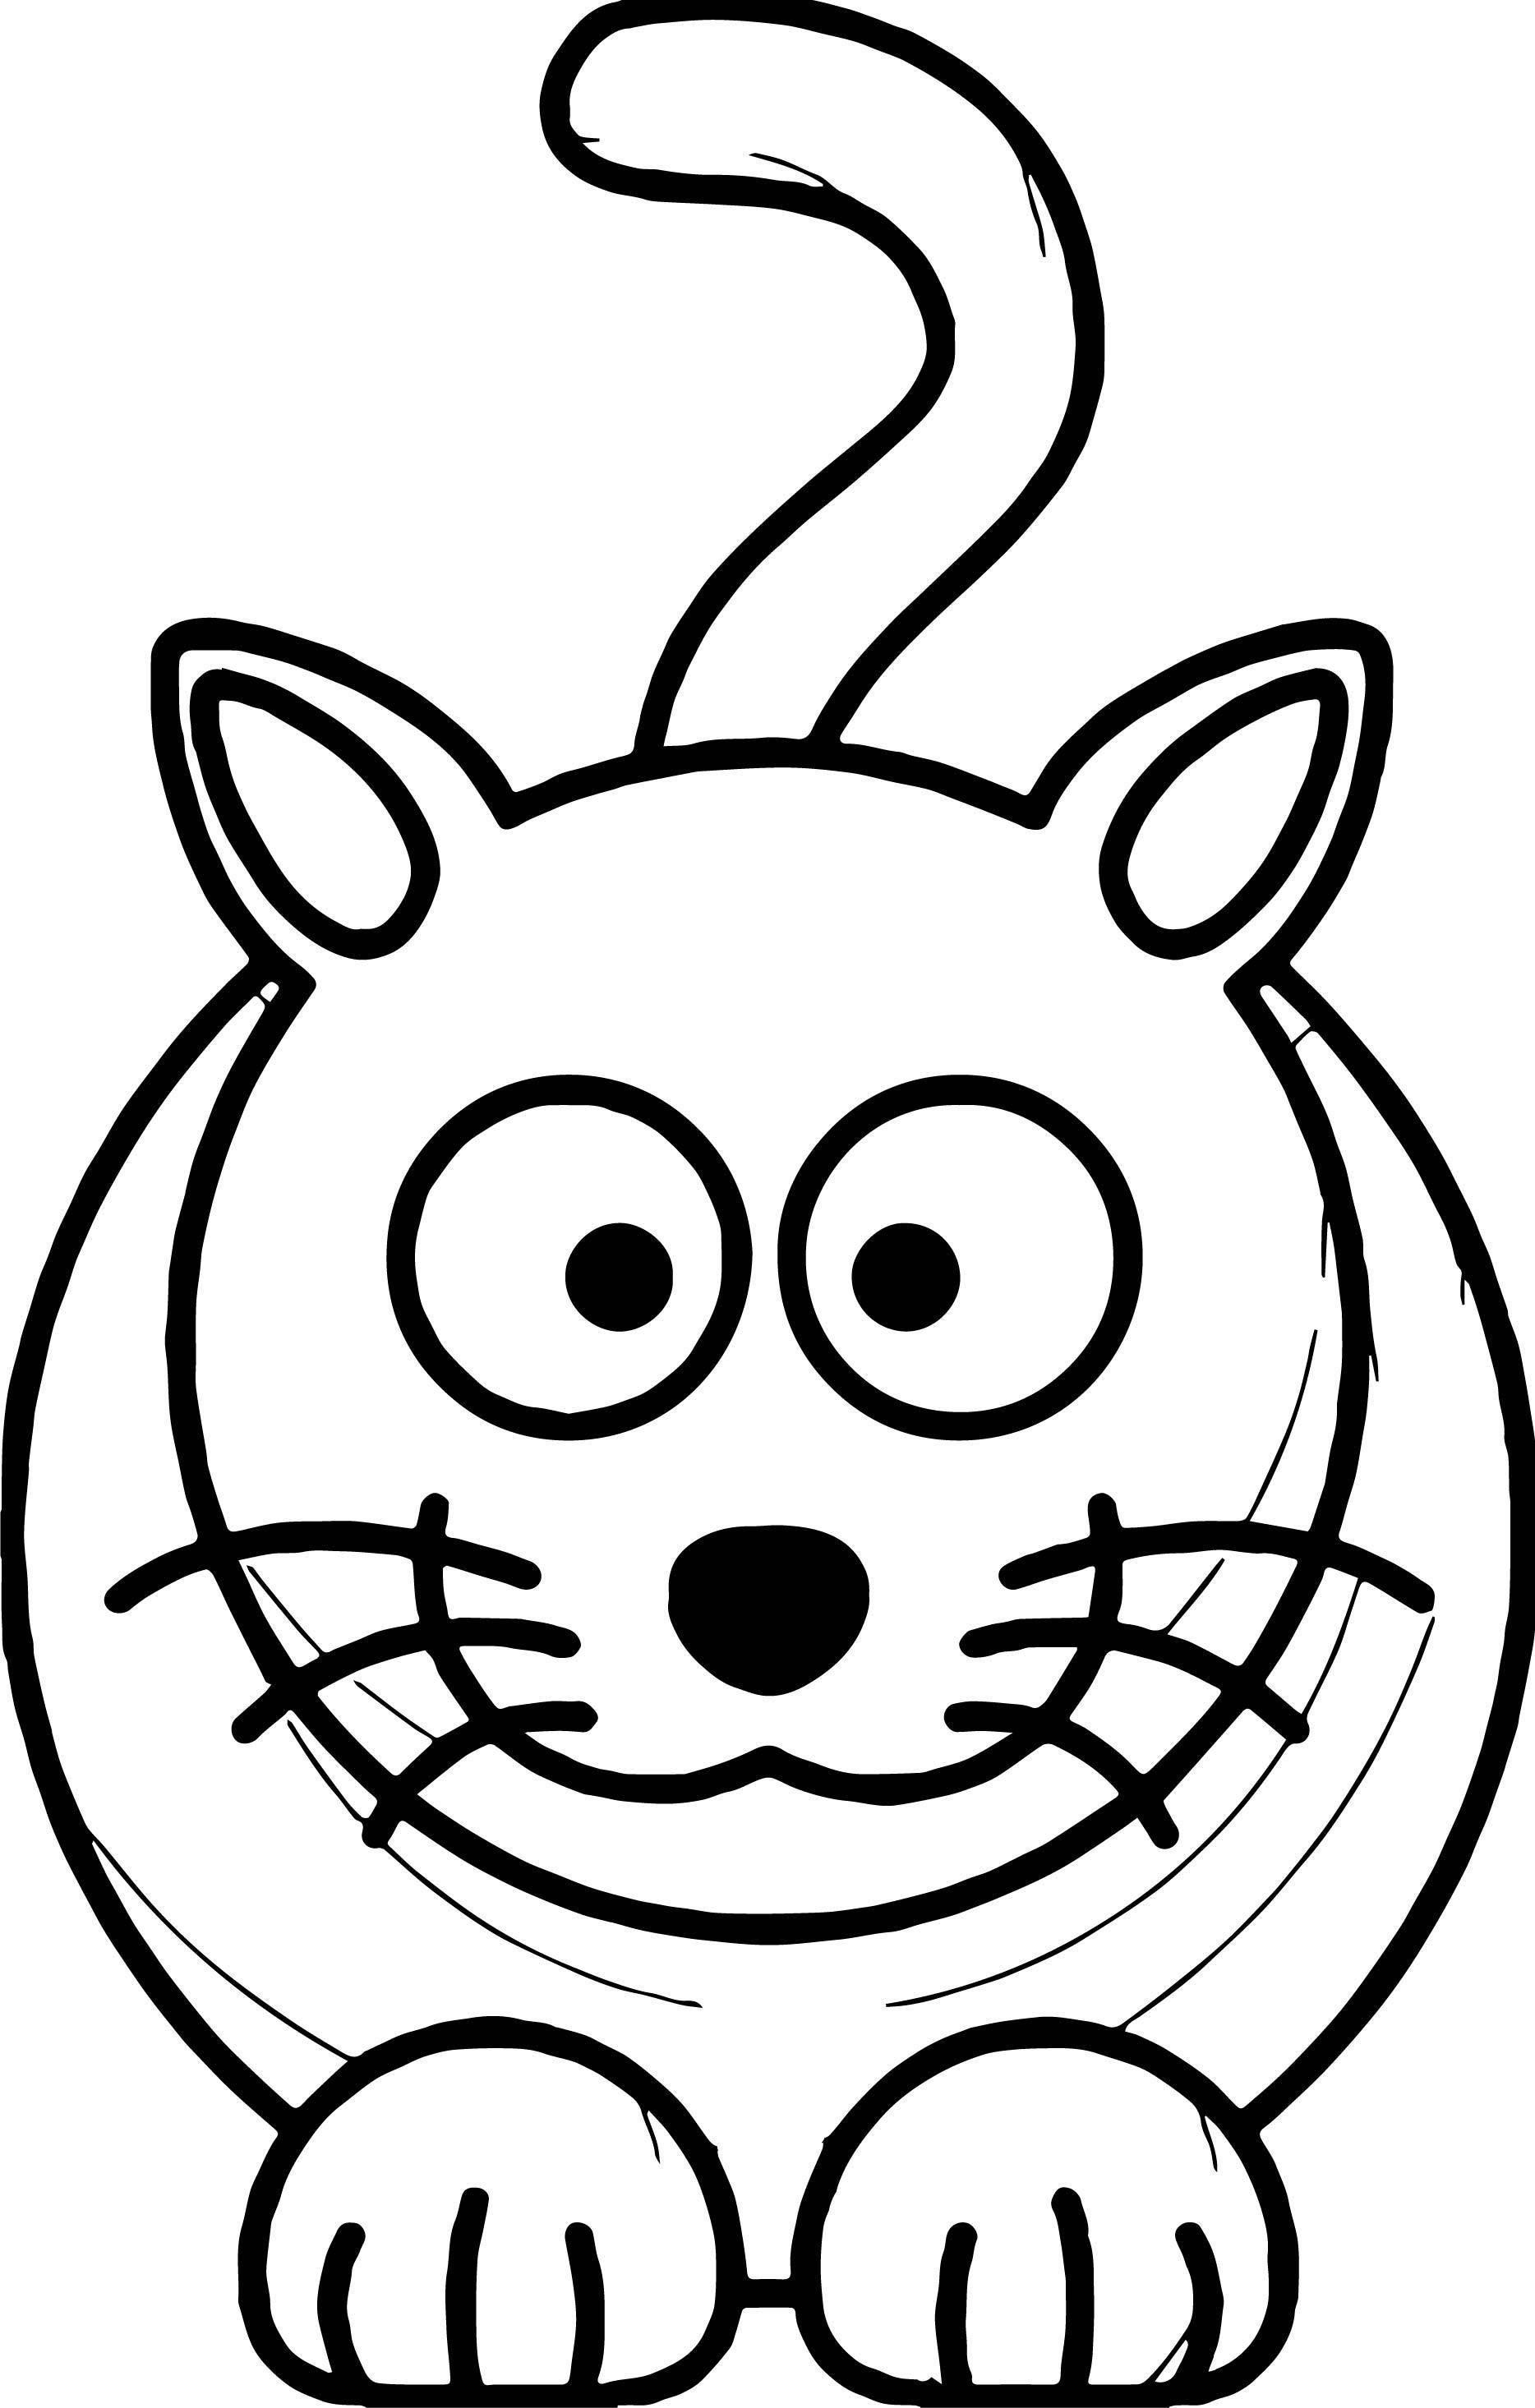 Old Cat Coloring Page